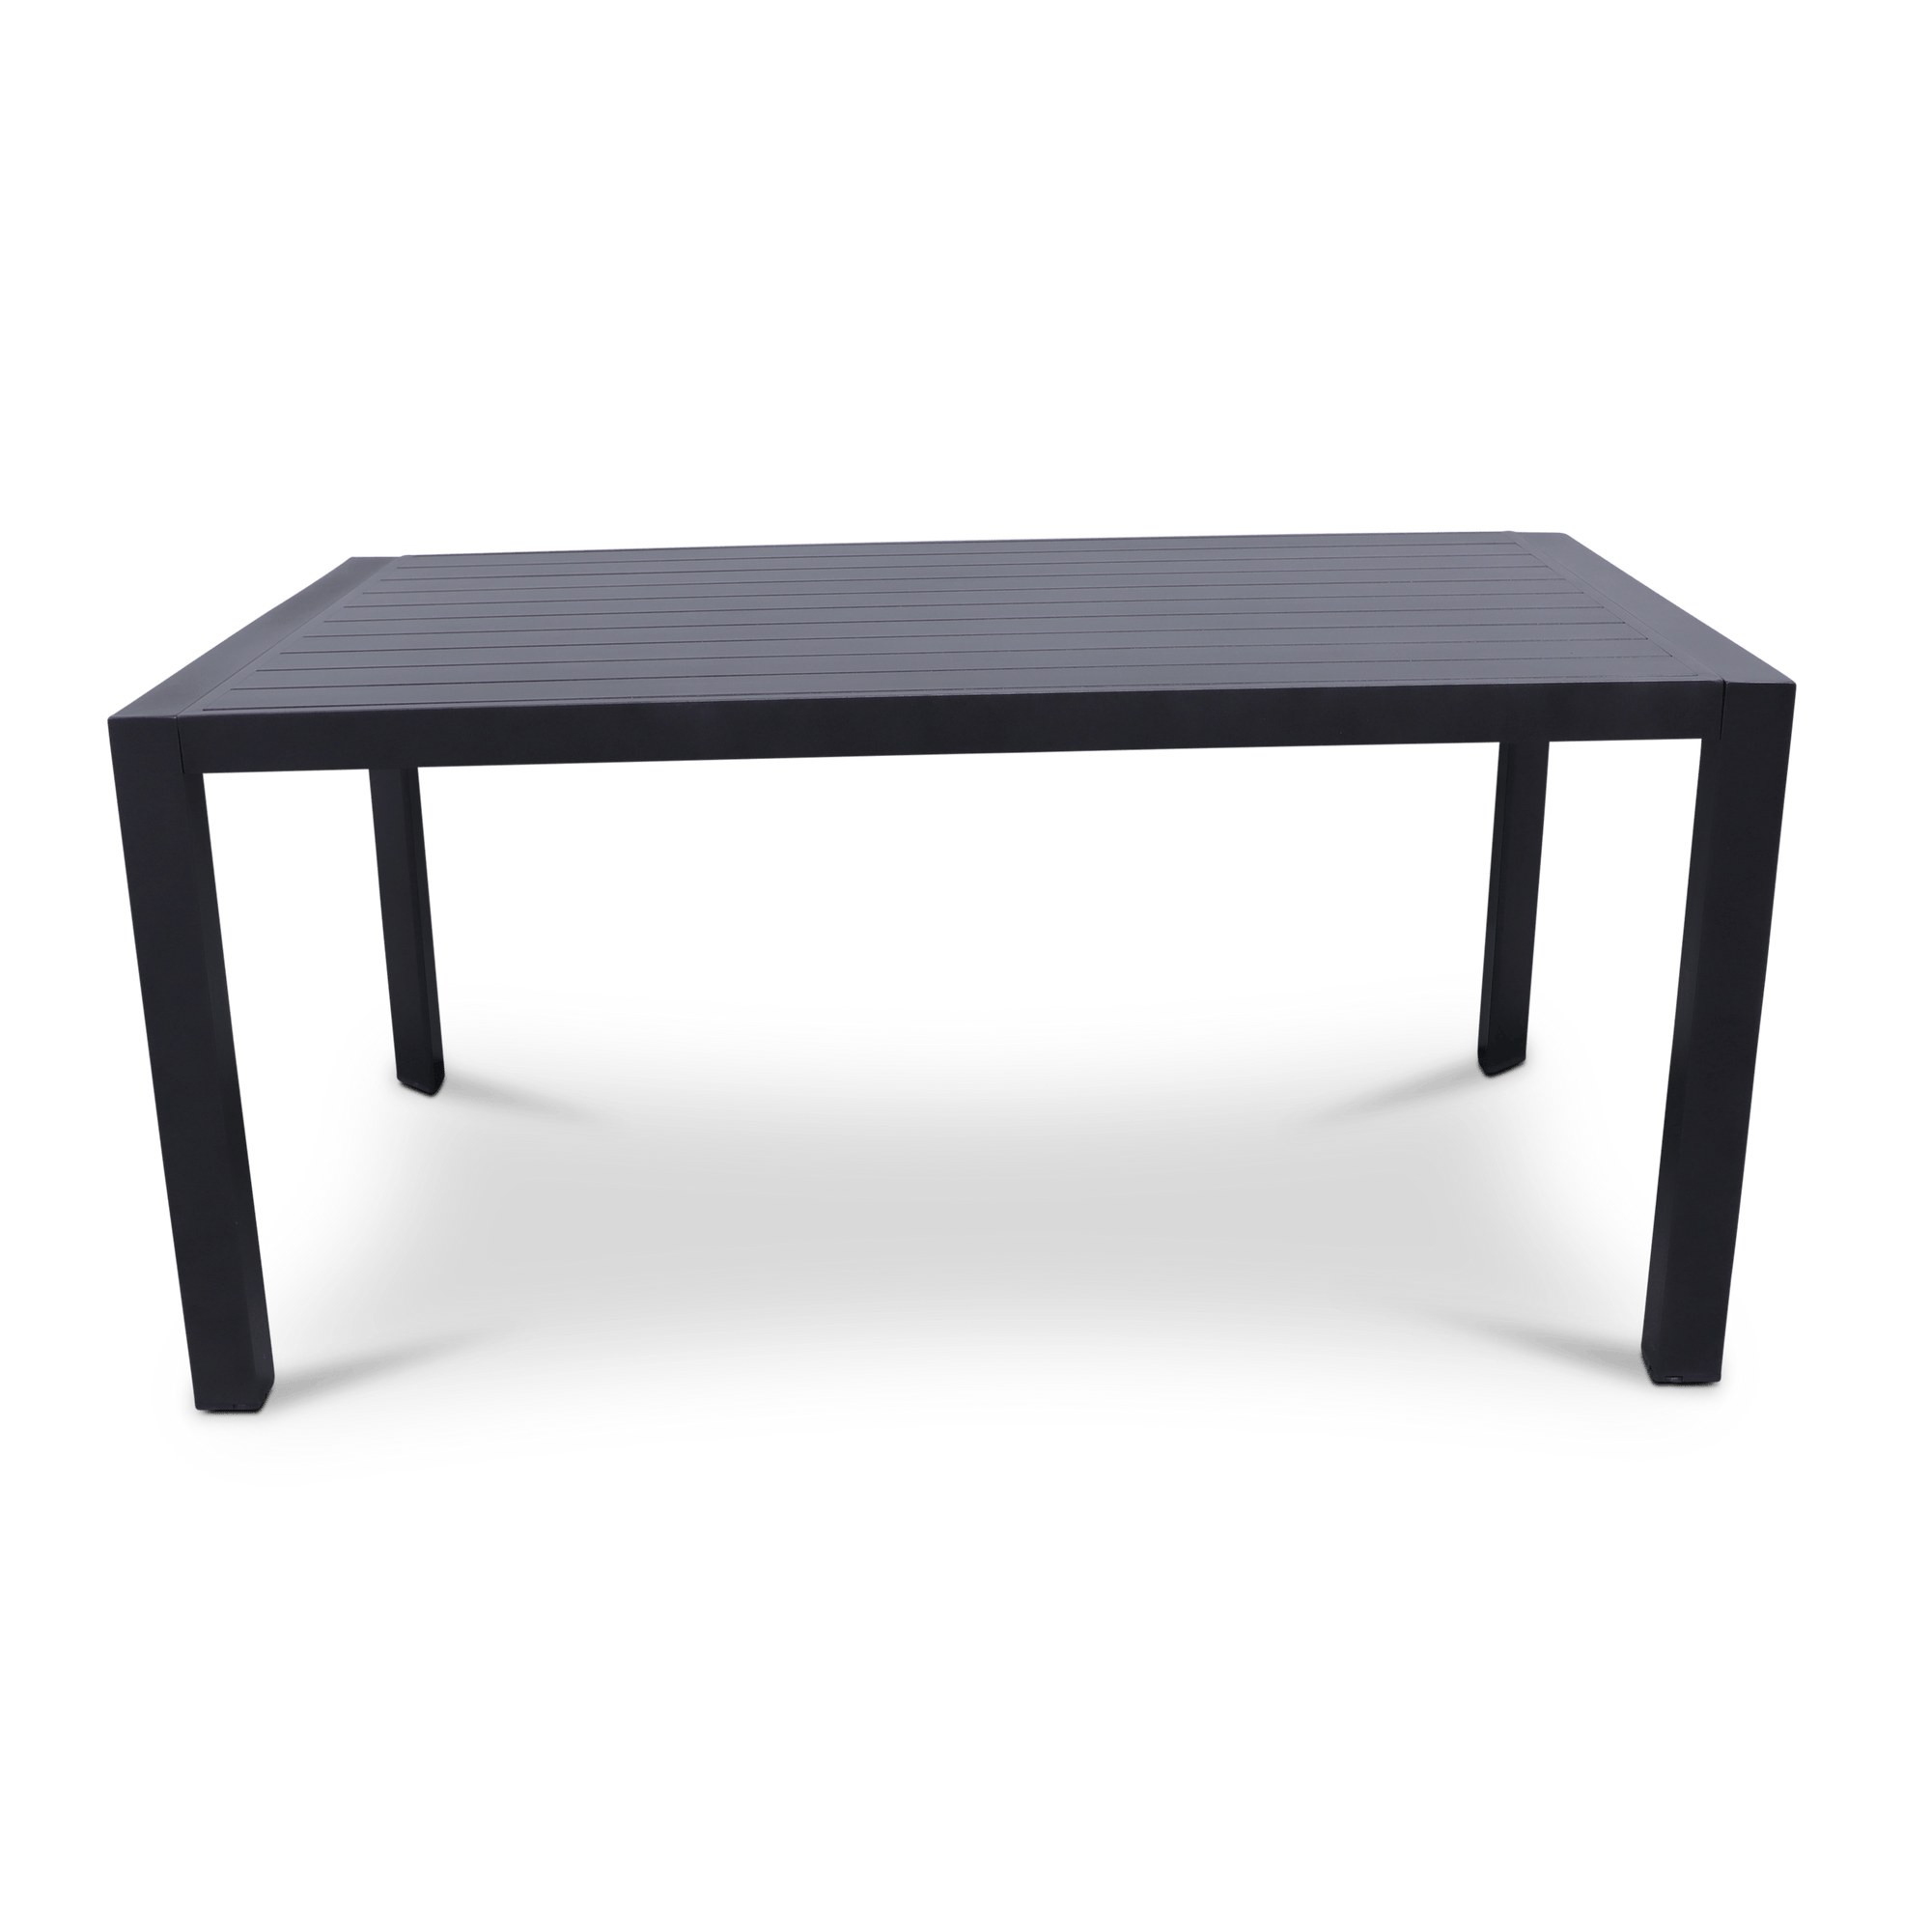 Bahamas Rectangle Dining Table (160x104cm) in Gunmetal Aluminium